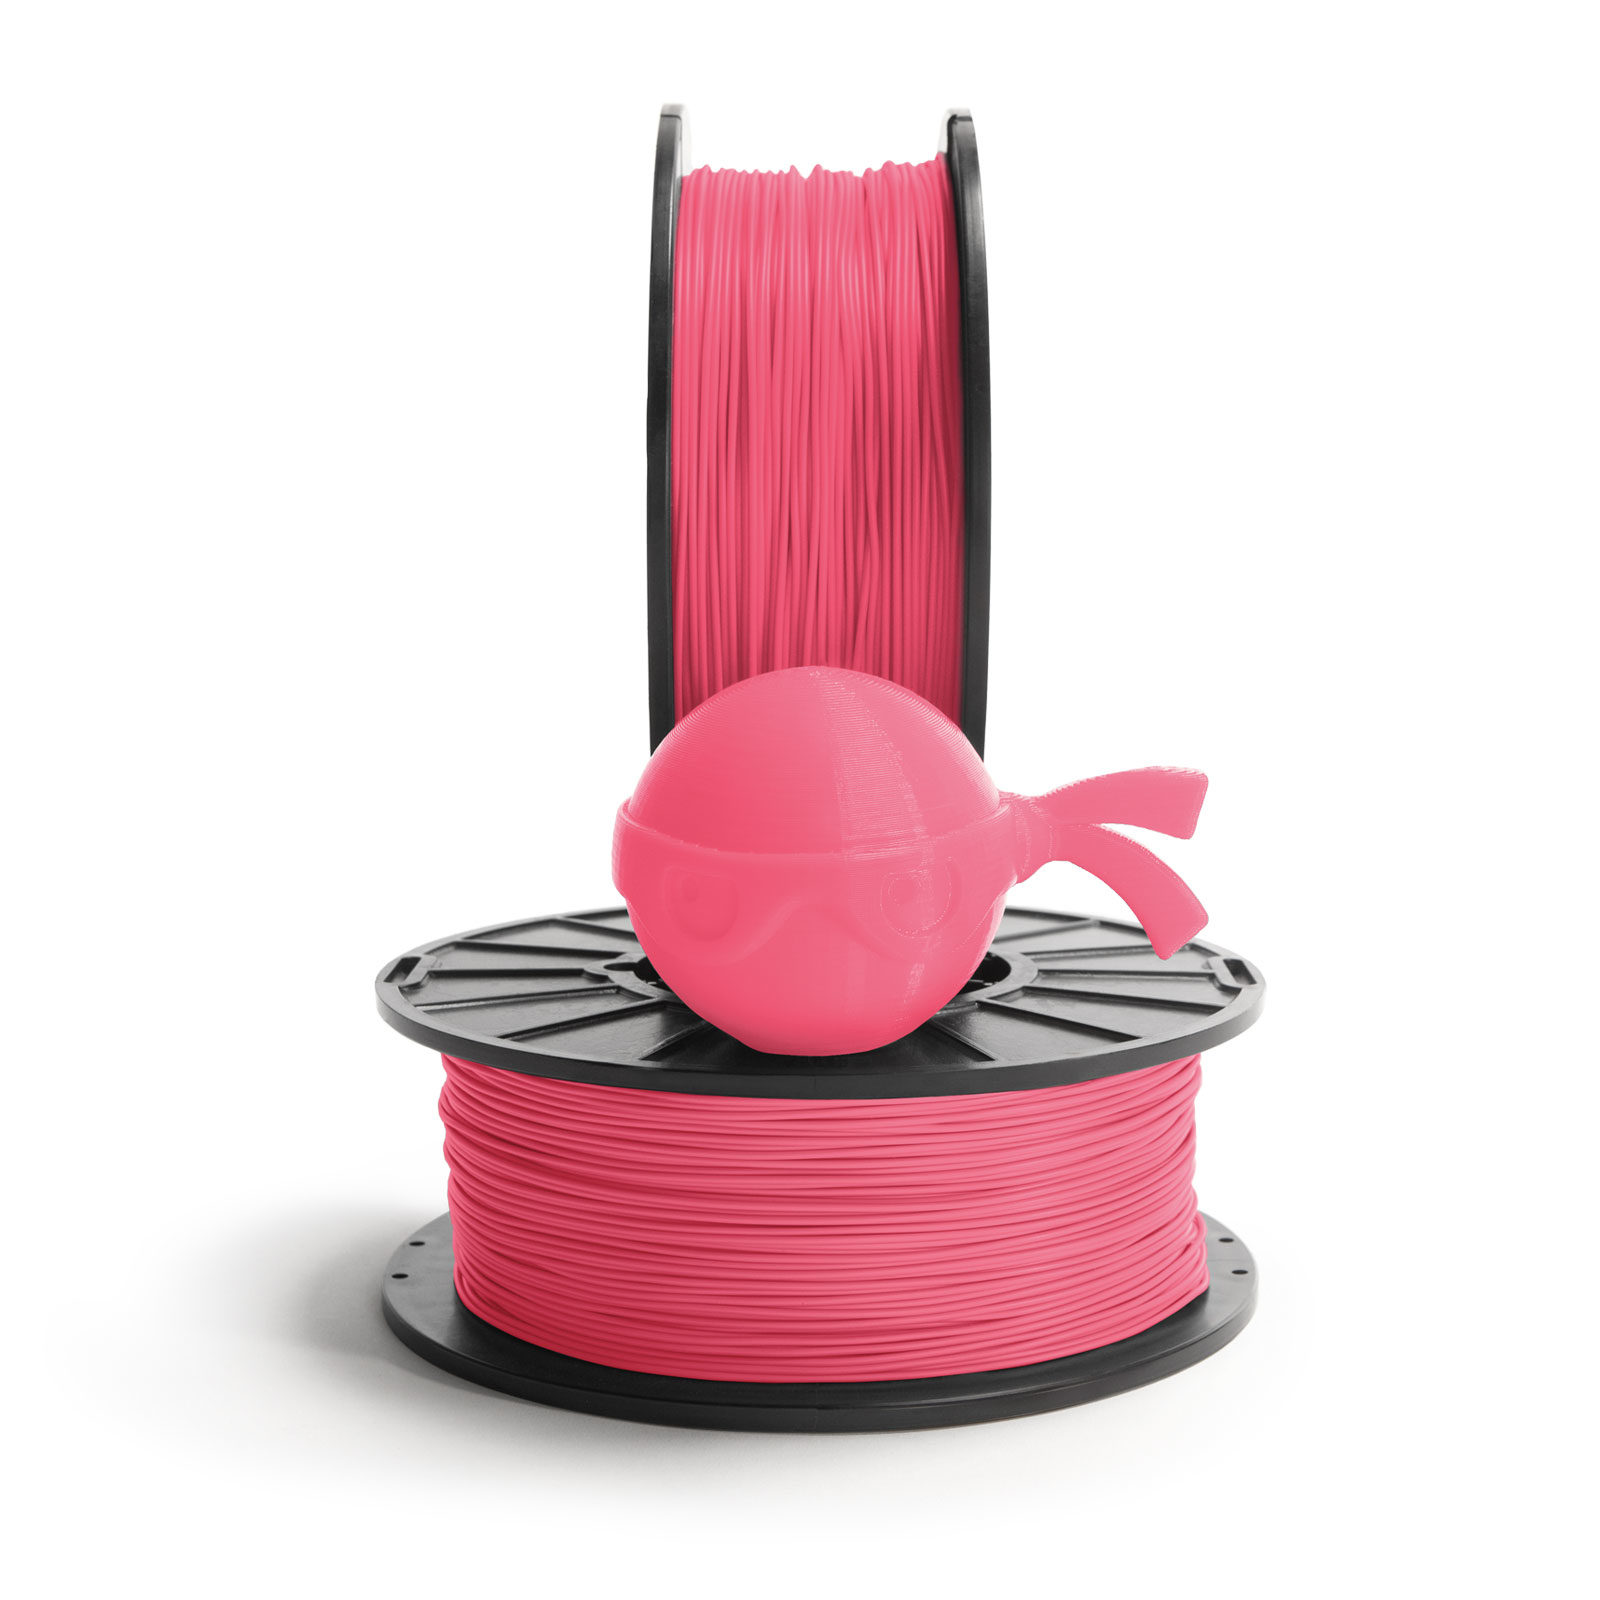 Flamingo pink ninja head sitting on NinjaTek 3D printing filament spool